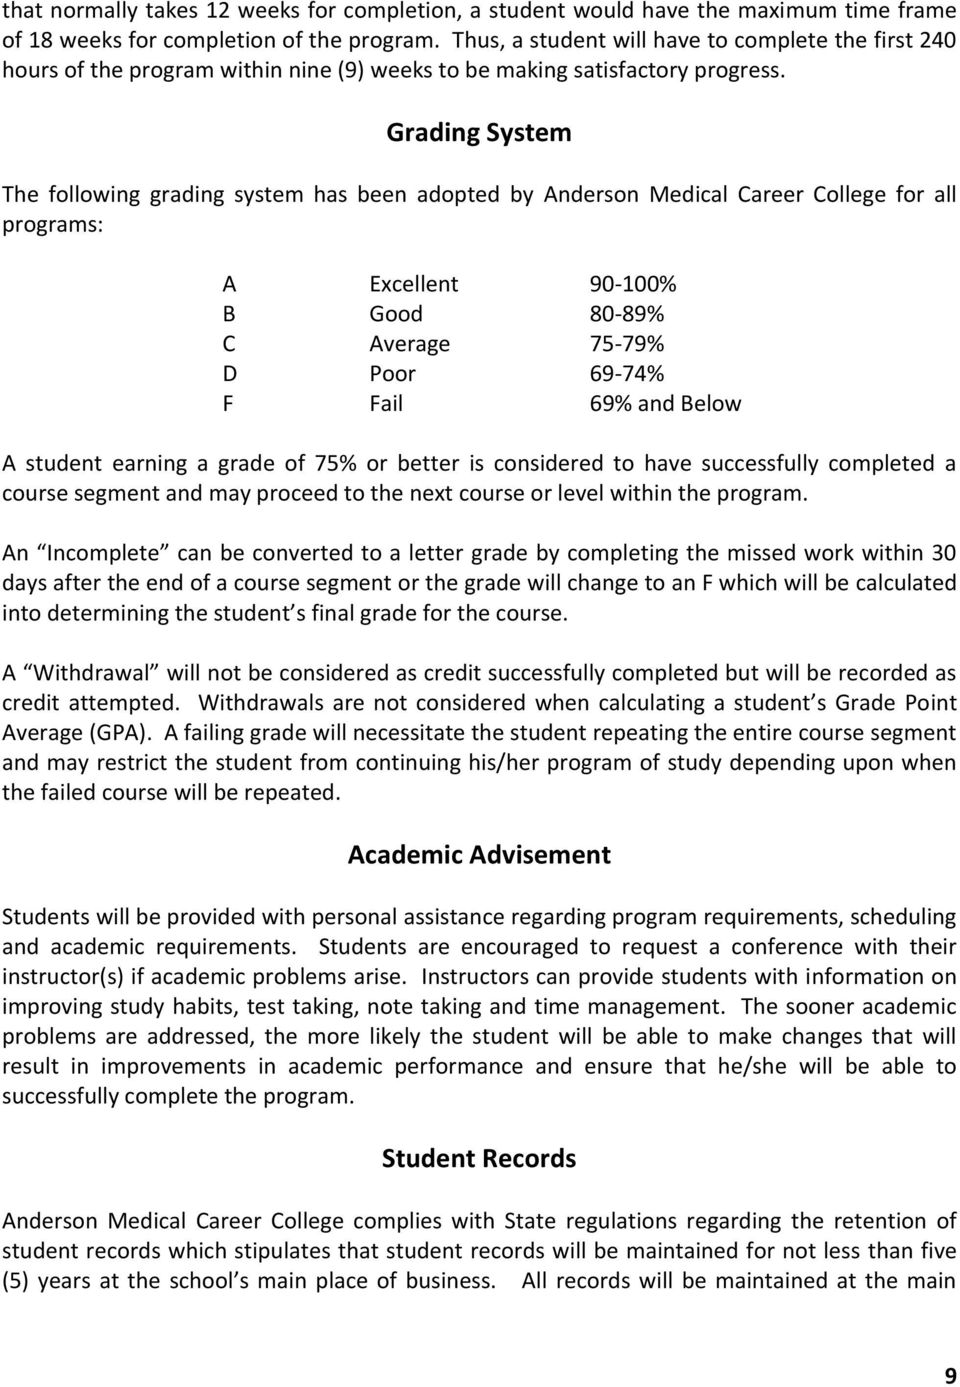 Grading System The following grading system has been adopted by Anderson Medical Career College for all programs: A Excellent 90-100% B Good 80-89% C Average 75-79% D Poor 69-74% F Fail 69% and Below